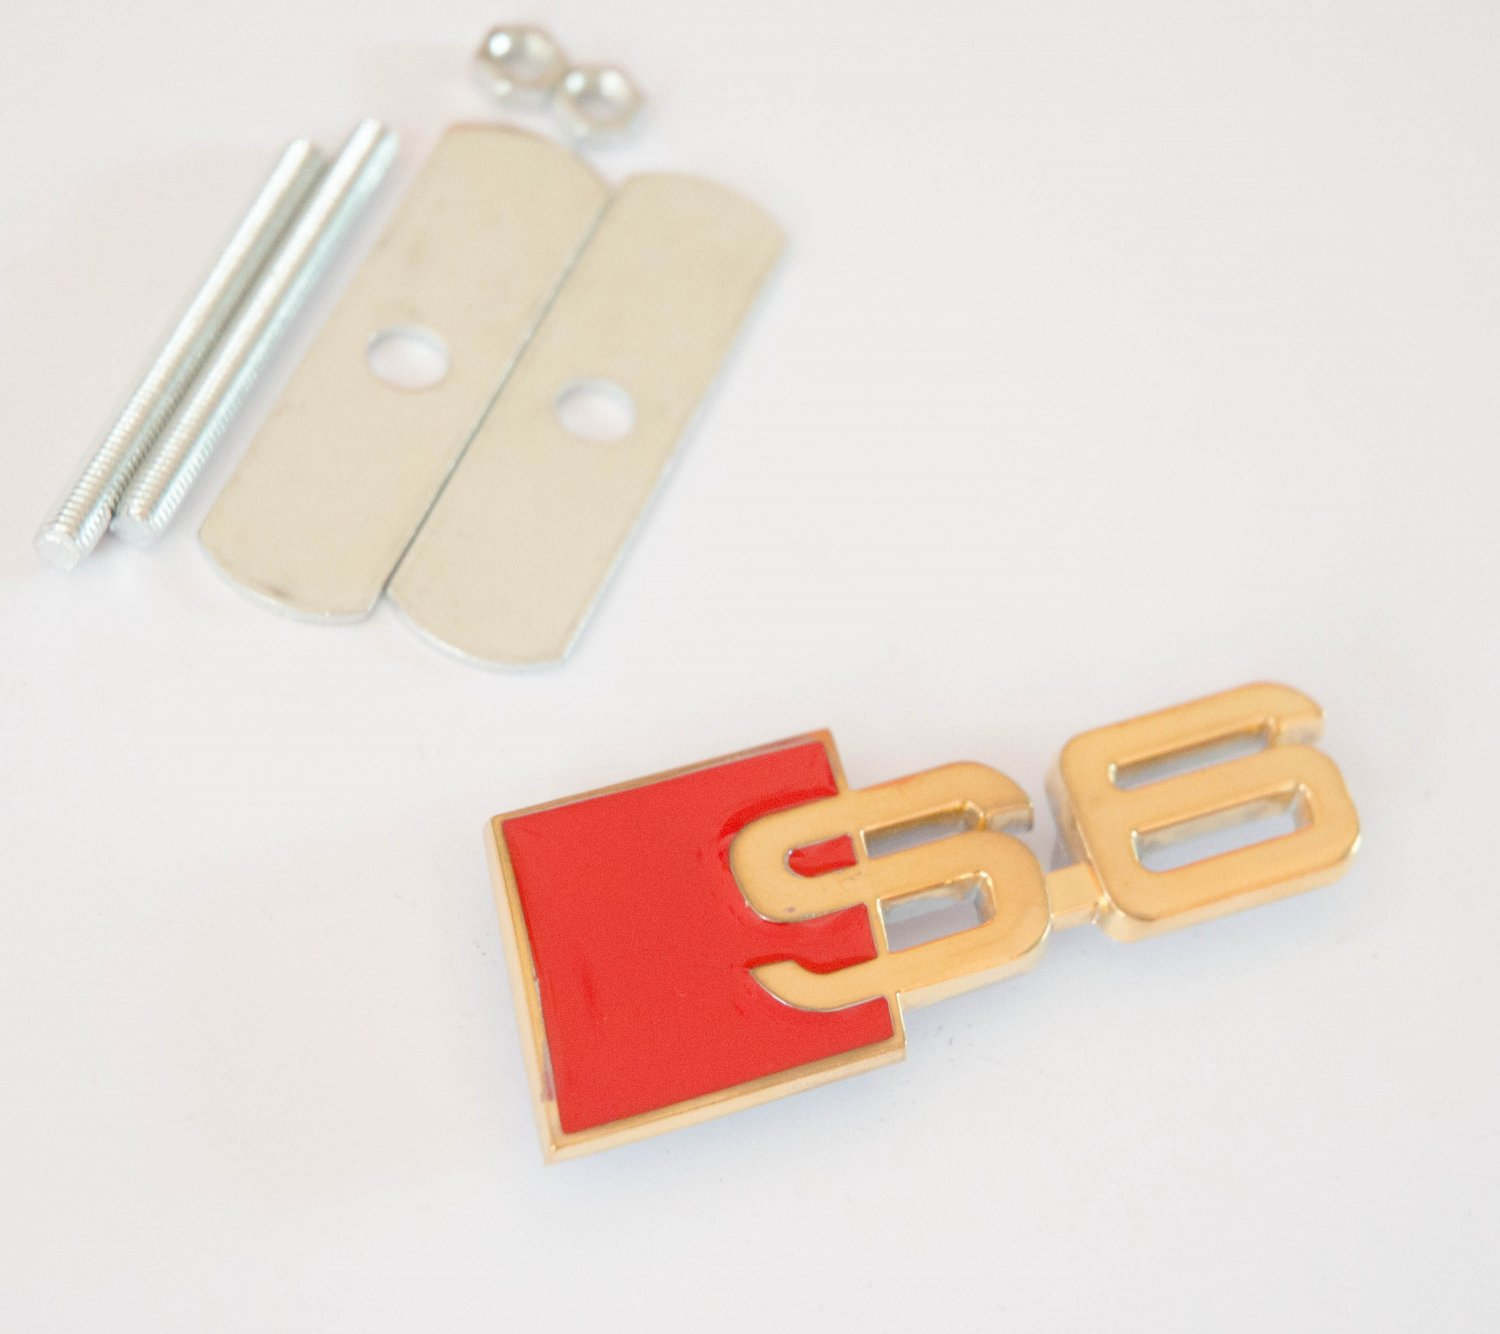 AUDI S6 24K Gold Plated Metal 3D Grill Badge Emblem